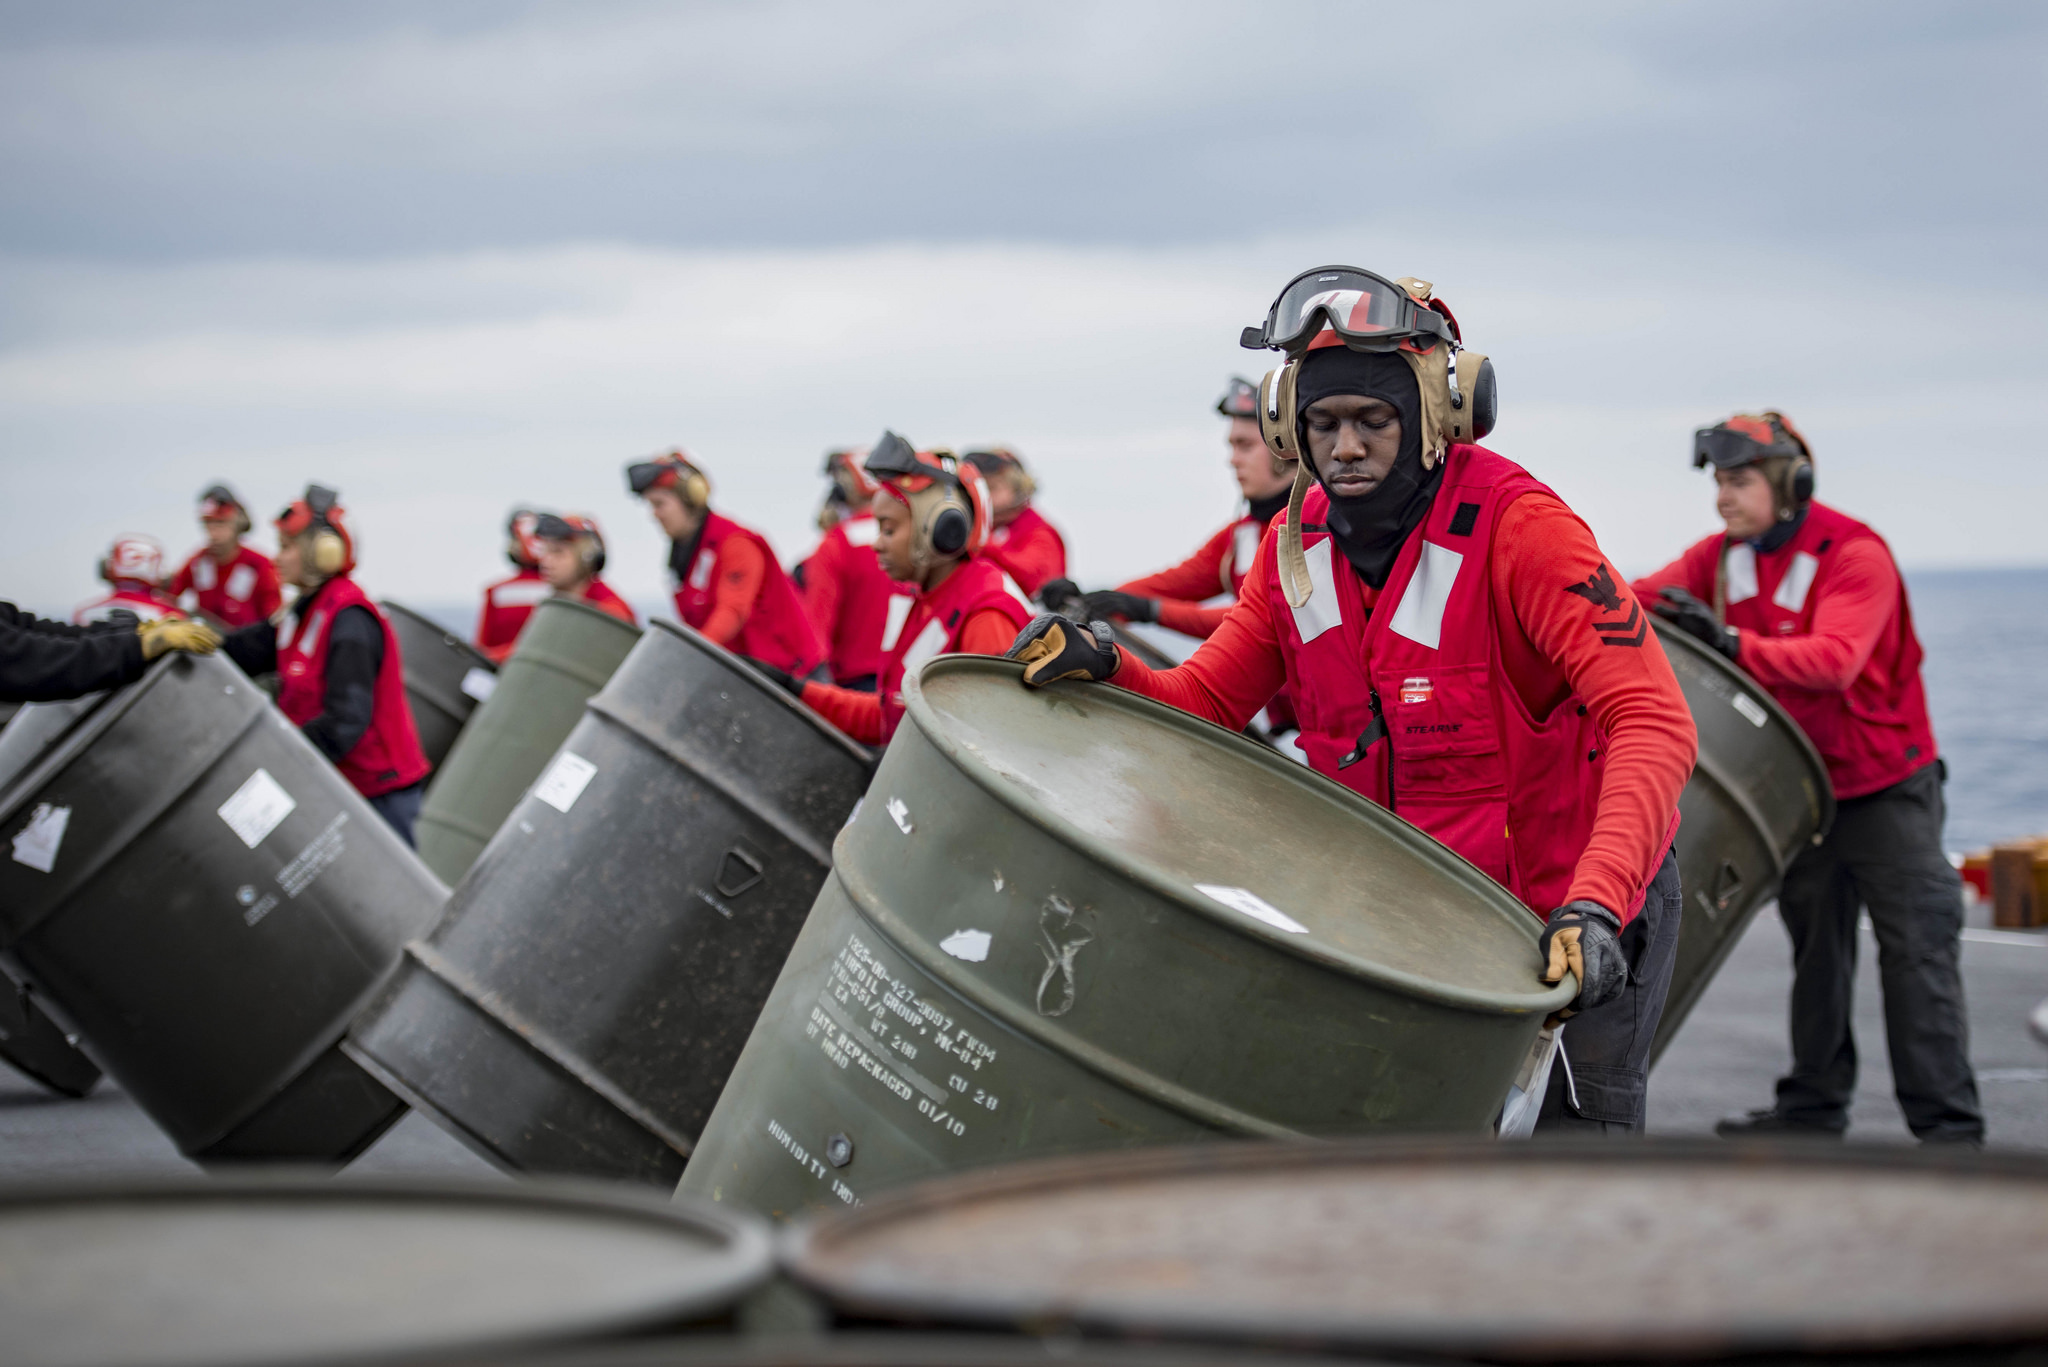 AO2 Adarryl Chaney, from New Orleans, and other weapons department Sailors move barrels containing ammunition to staging areas in preparation of an ammunition offload aboard the aircraft carrier USS George H.W. Bush (CVN 77). The ship is underway conducting sustainment exercises to maintain carrier readiness. (MC3 Joe Boggio/Navy)